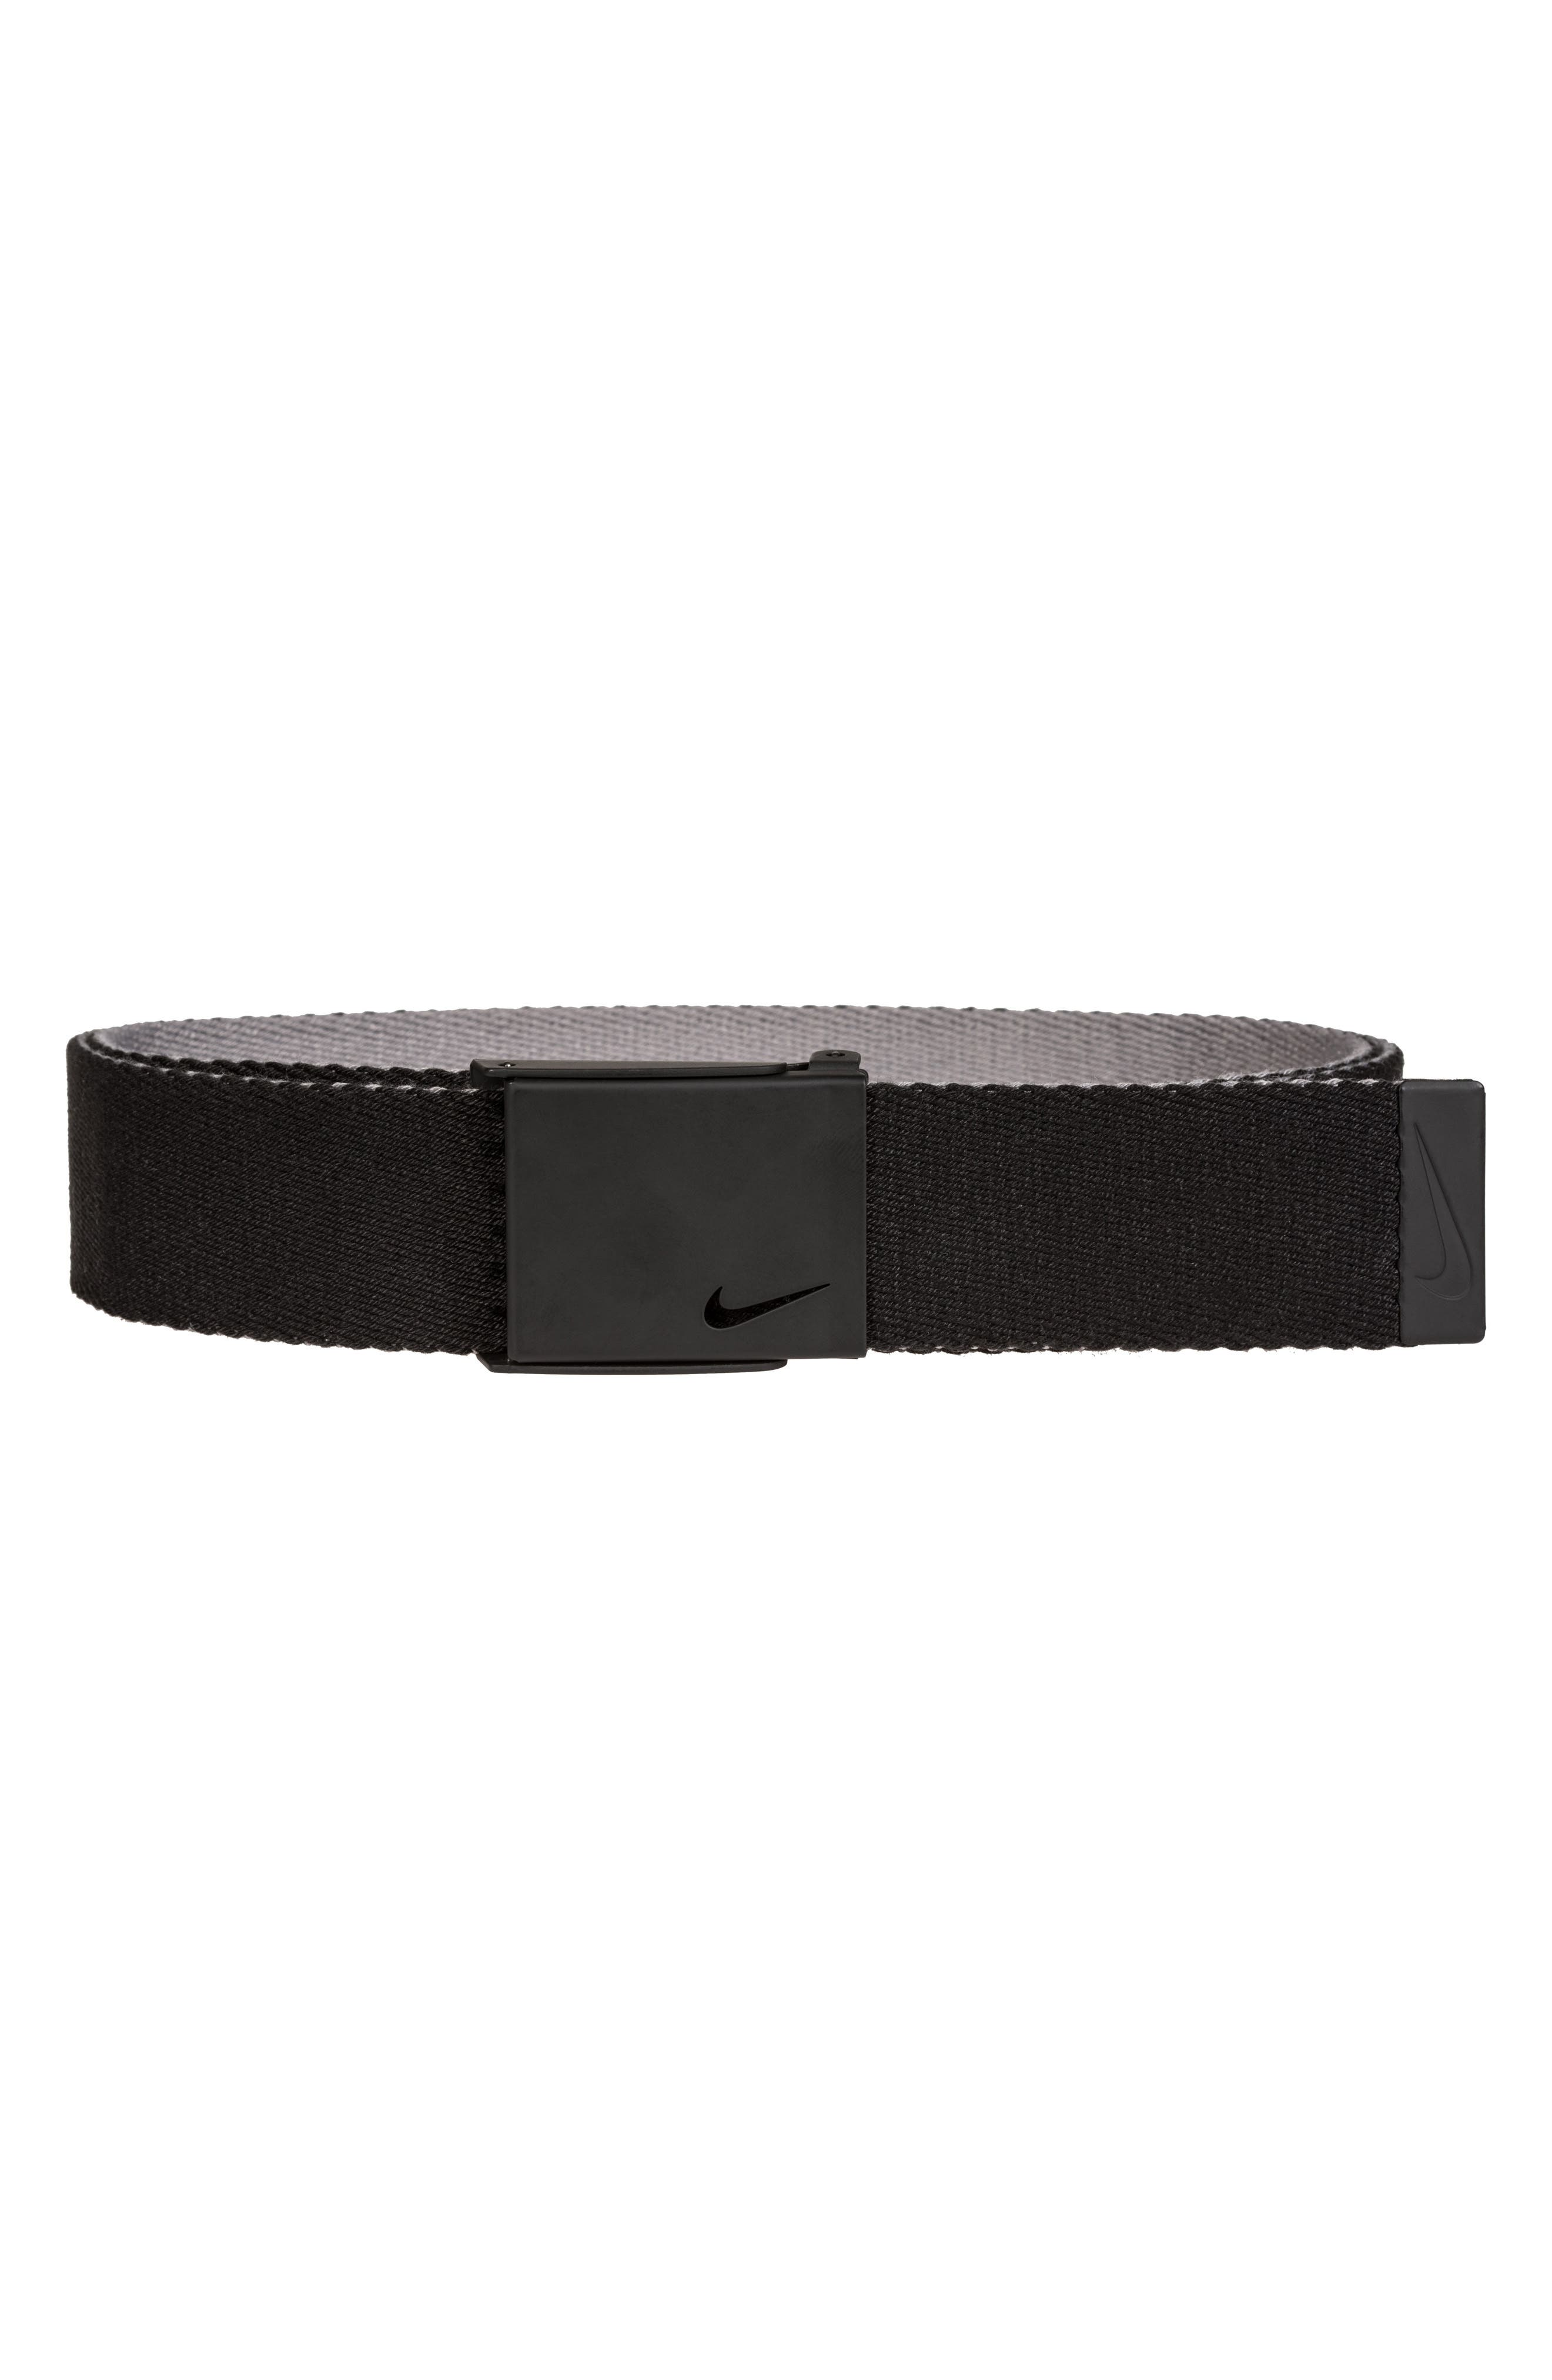 NIKE, Essentials Reversible Webbed Belt, Main thumbnail 1, color, BLACK/ CHARCOAL